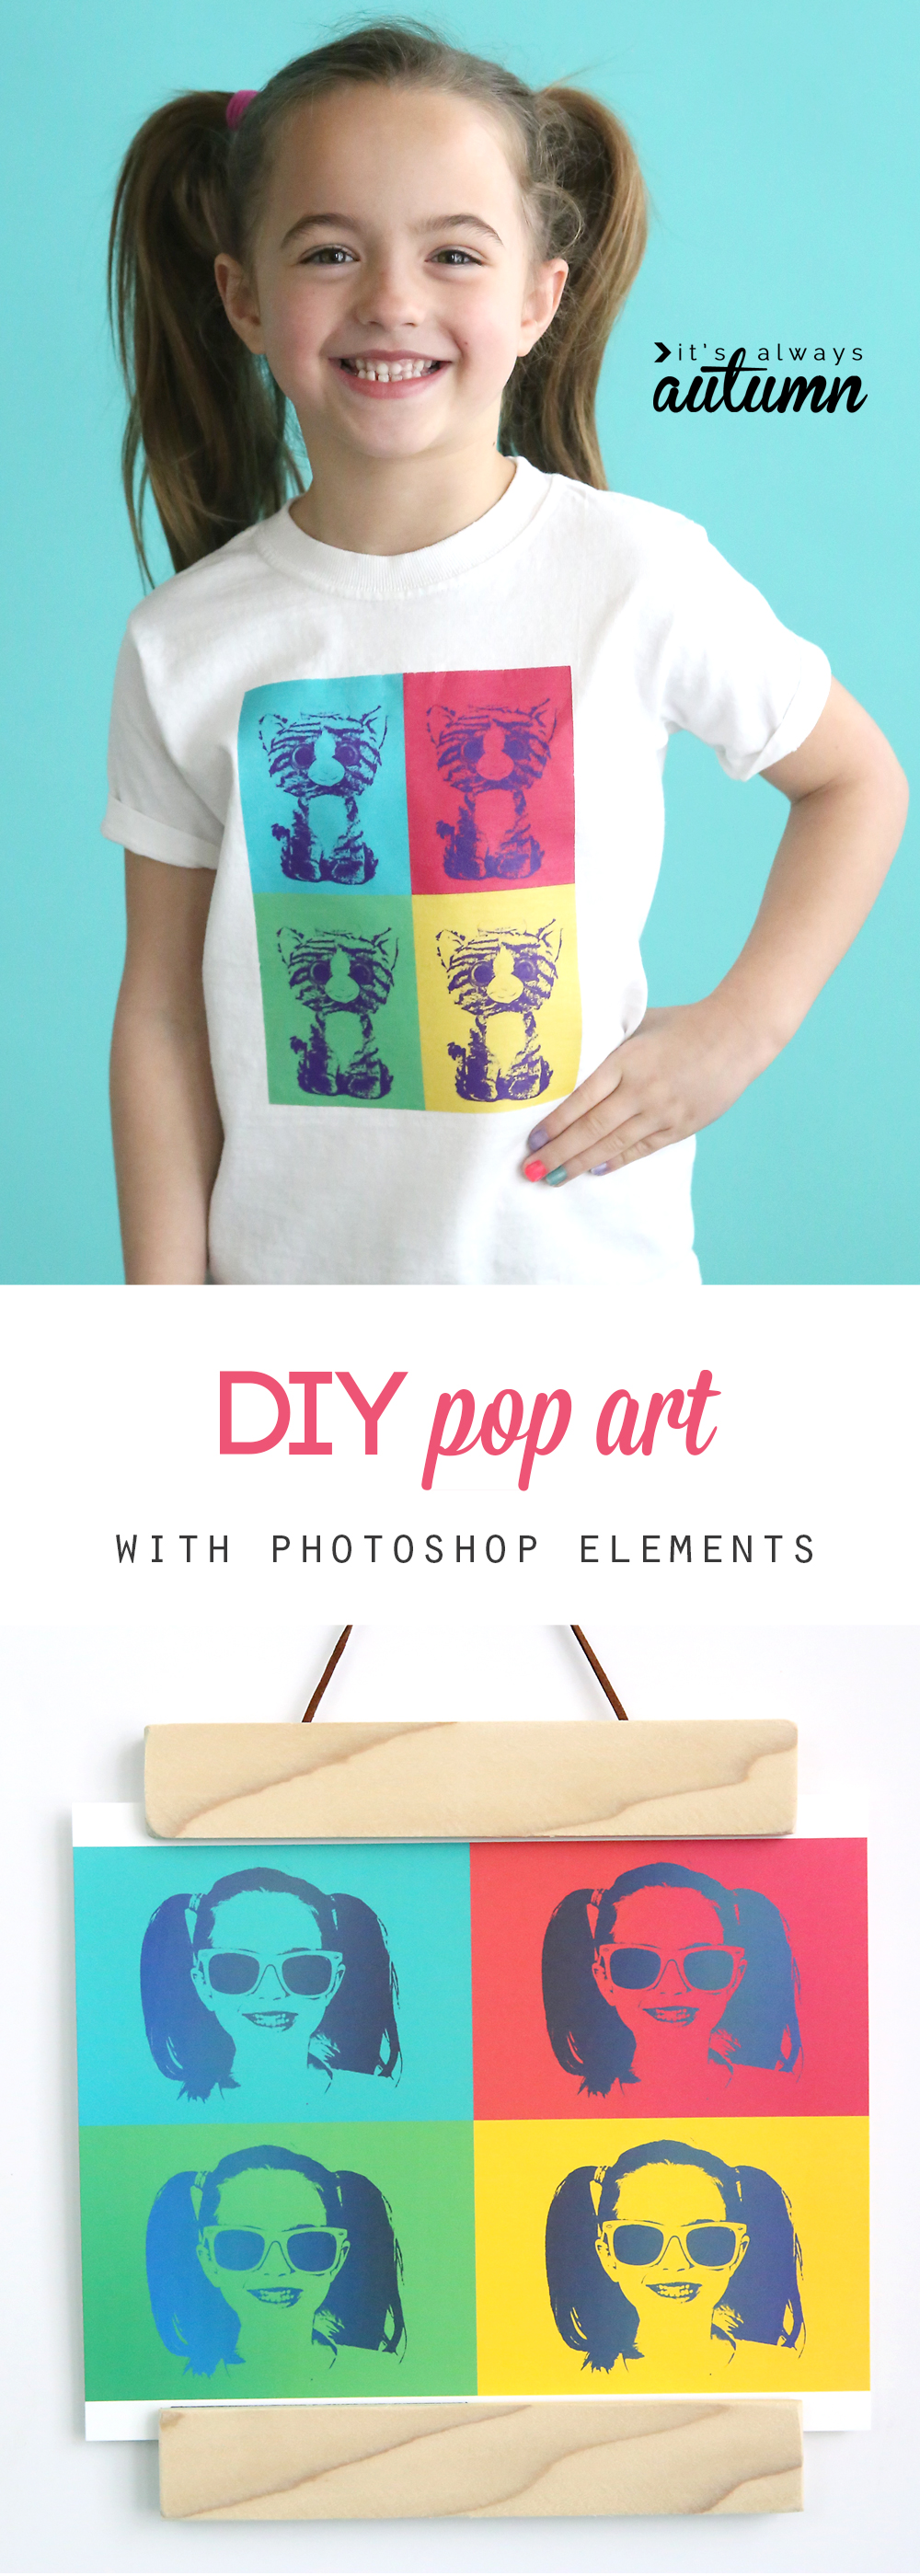 This is cool! Turn one of your photos into pop art in just a few clicks using Photoshop Elements. Makes a cute t-shirt!